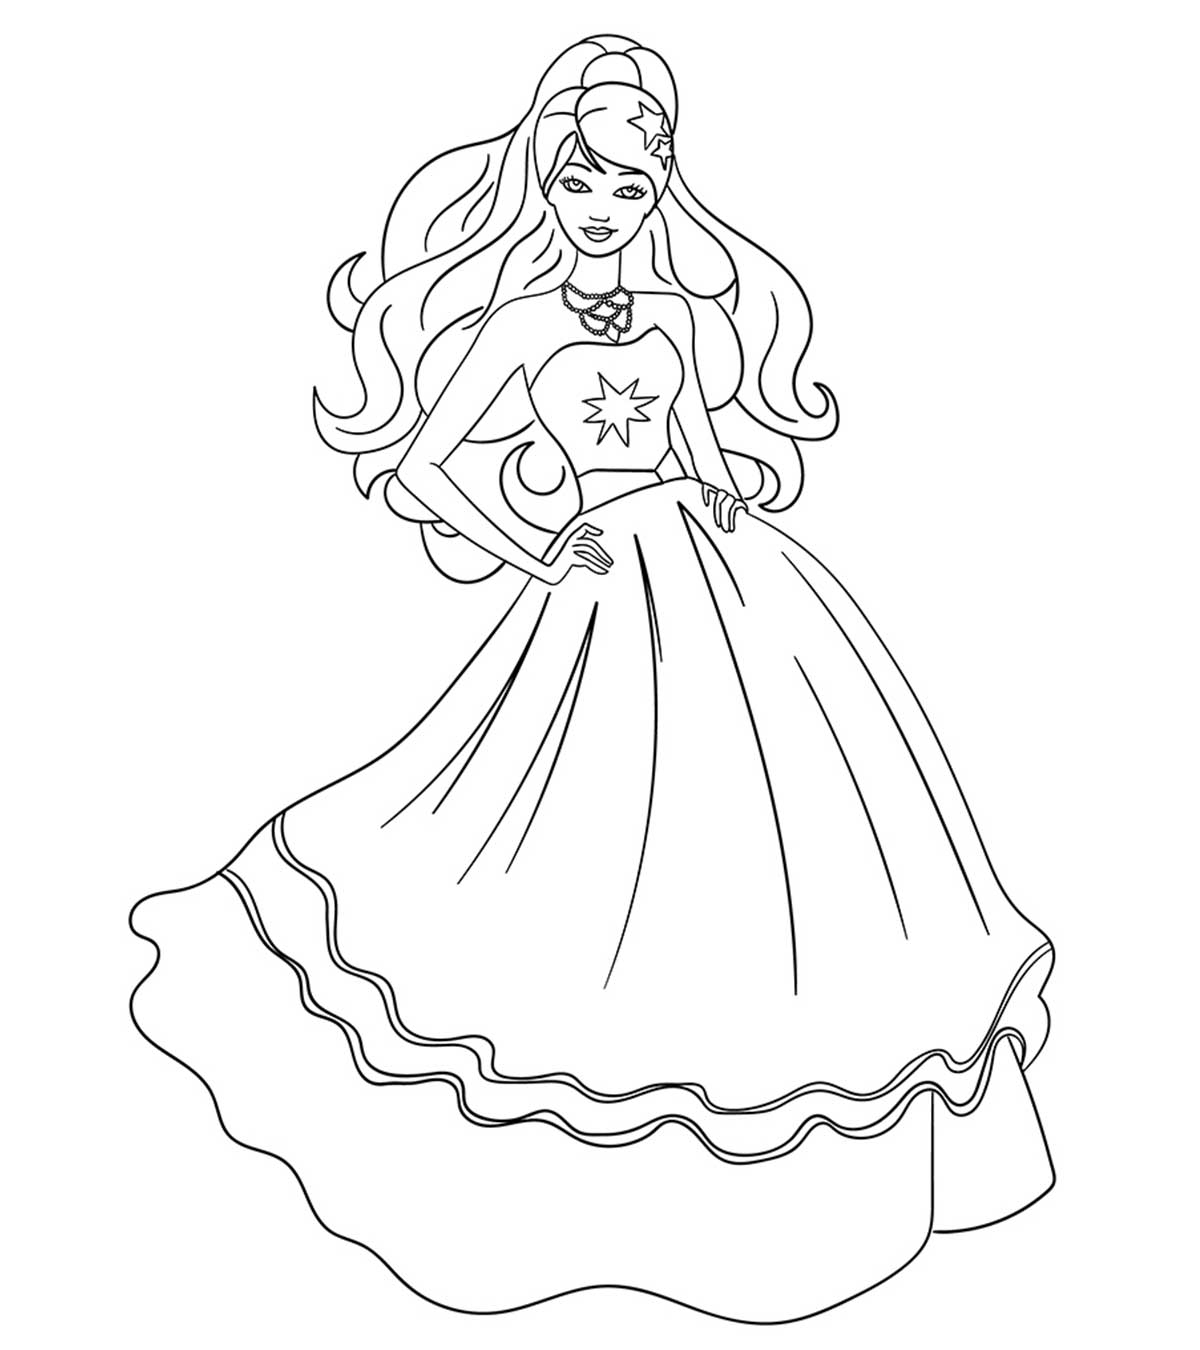 Barbie Halloween Coloring Pages Top 50 Free Printable Barbie Coloring Pages Online